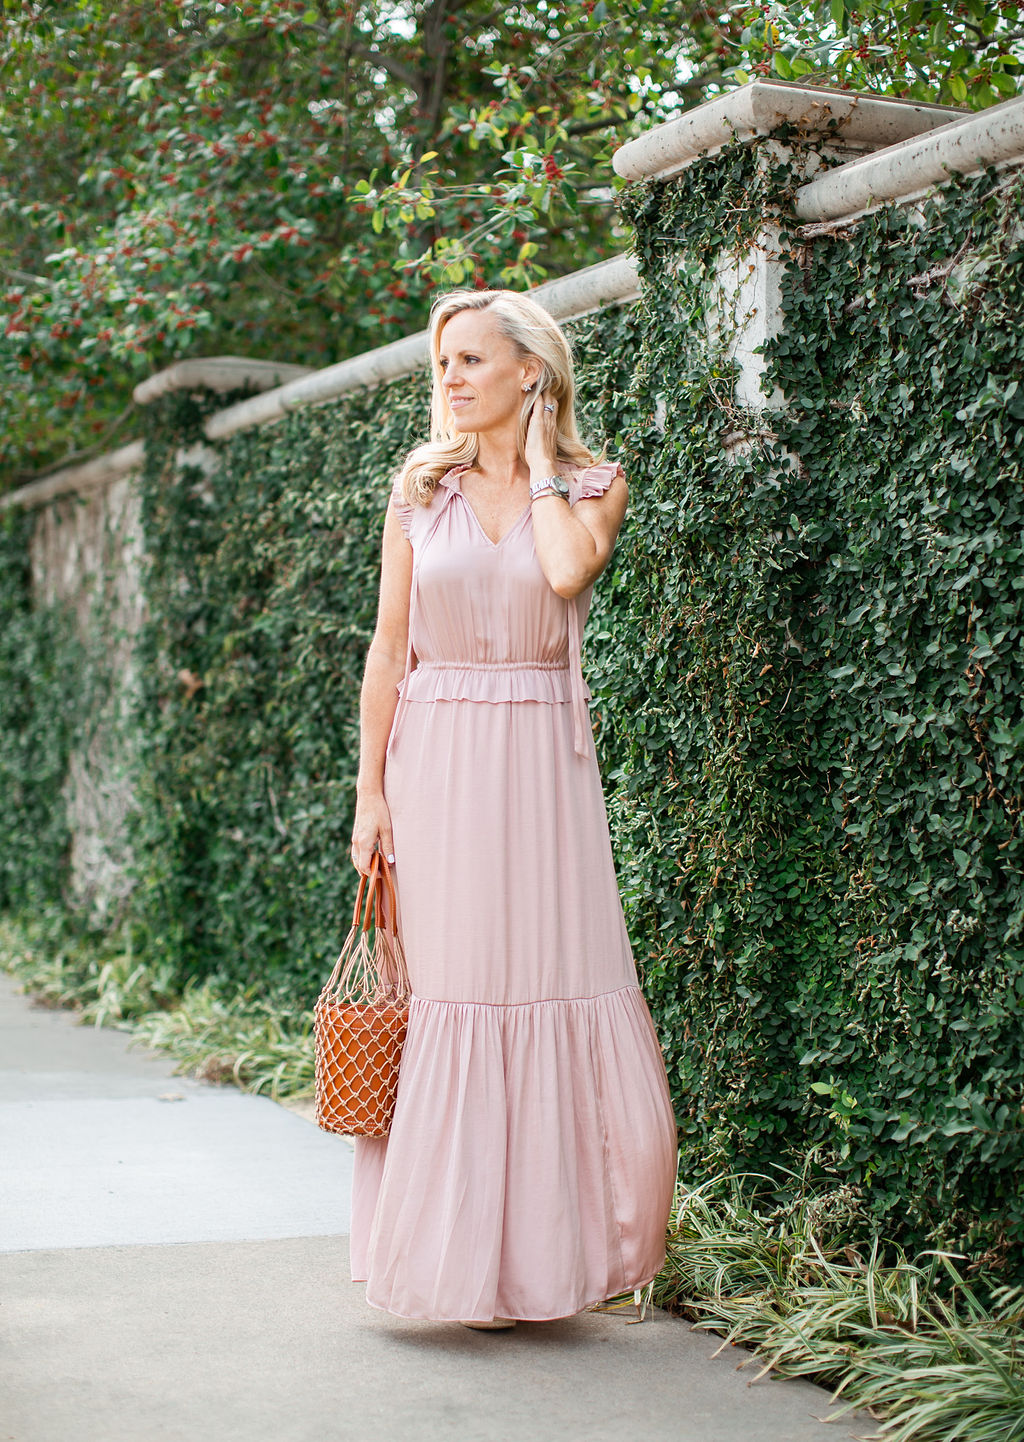 Alicia Wood, Dallas Lifestyle Expert, Dallas Fashion Blogger, Dallas Influencer, Alicia Wood Lifestyle, Banana Republic soft satin maxi dress